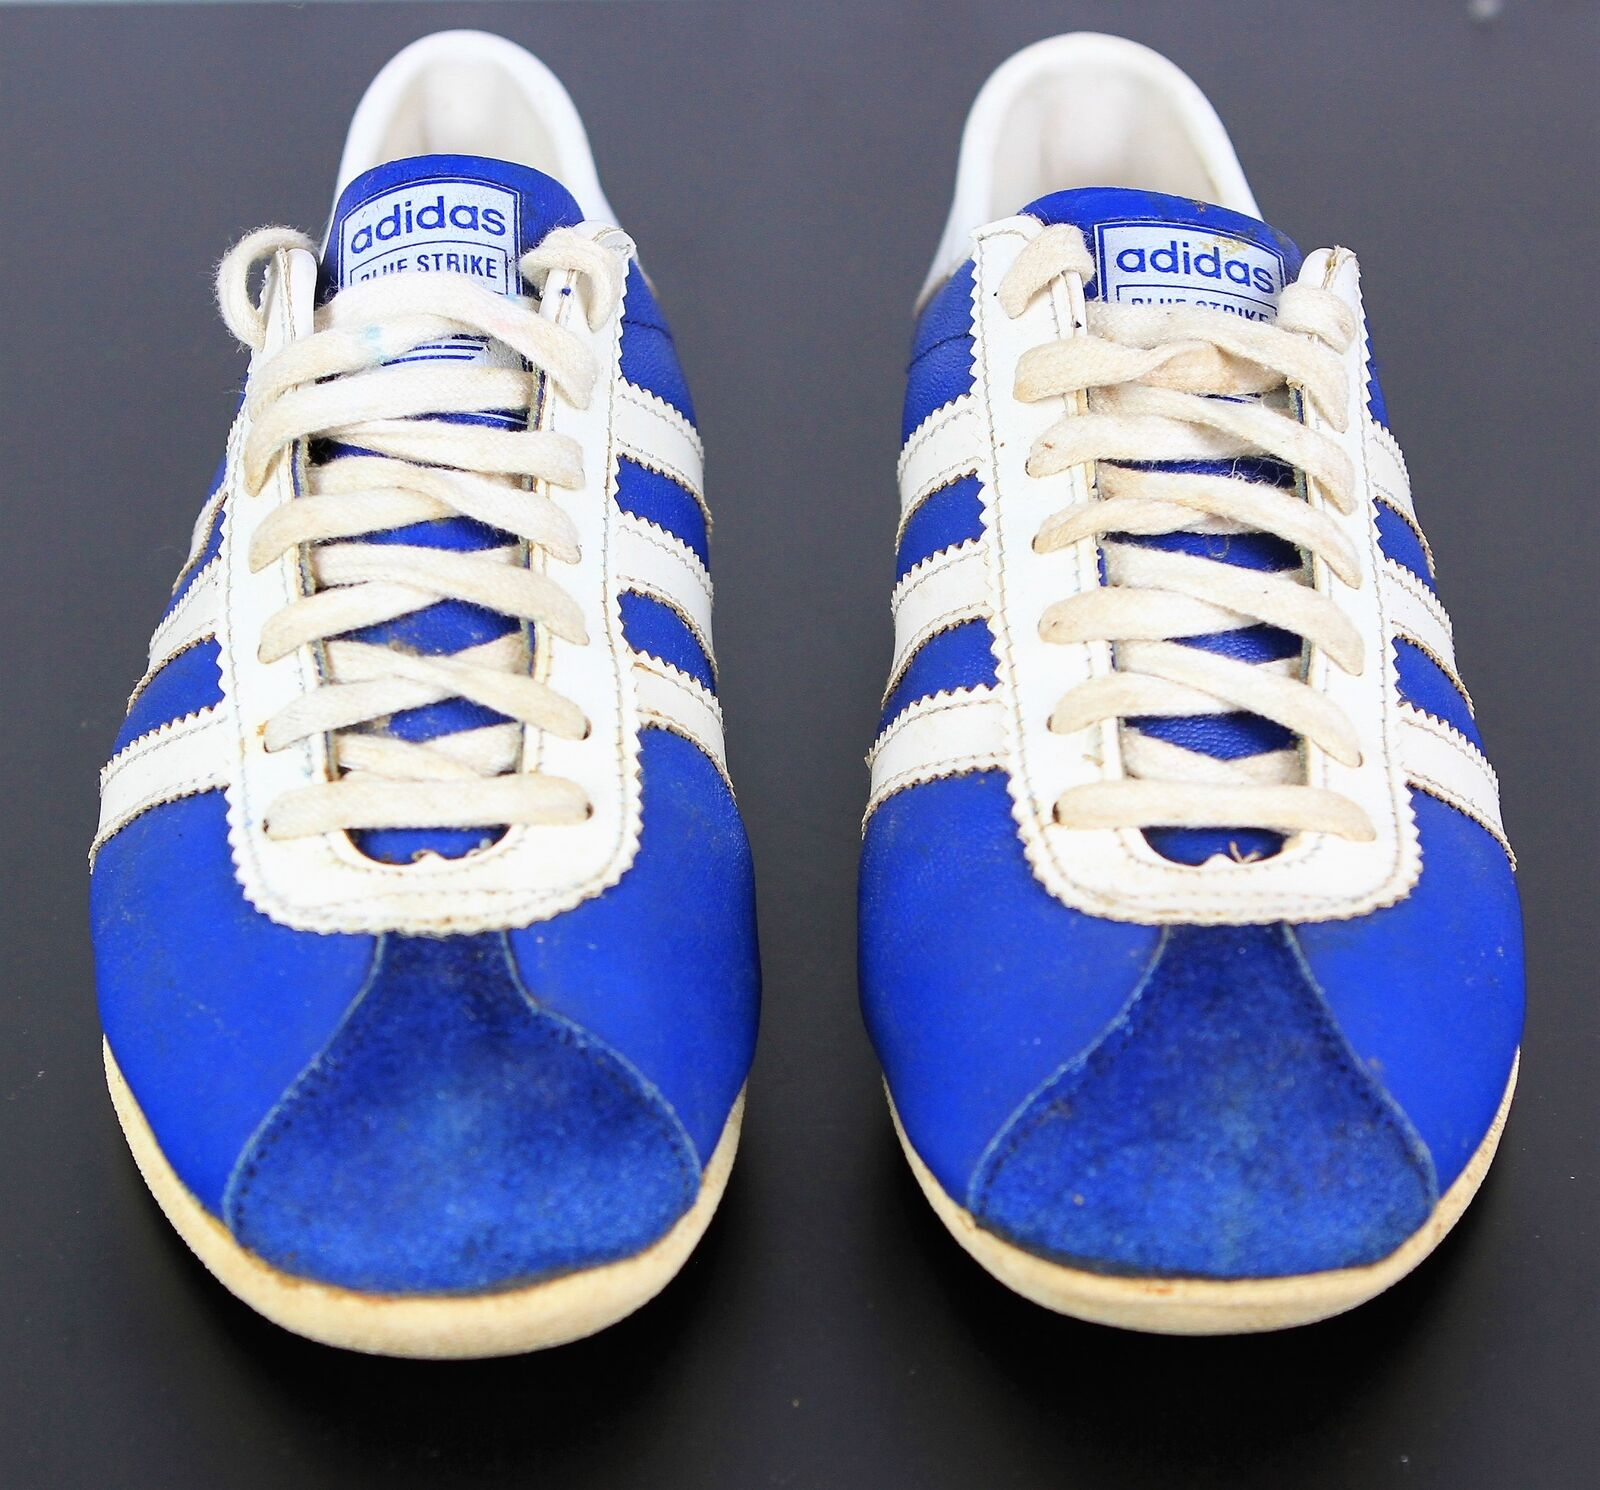 Vintage Adidas Blu Strike Scarpe Sportive 243 P The most popular shoes for men and women